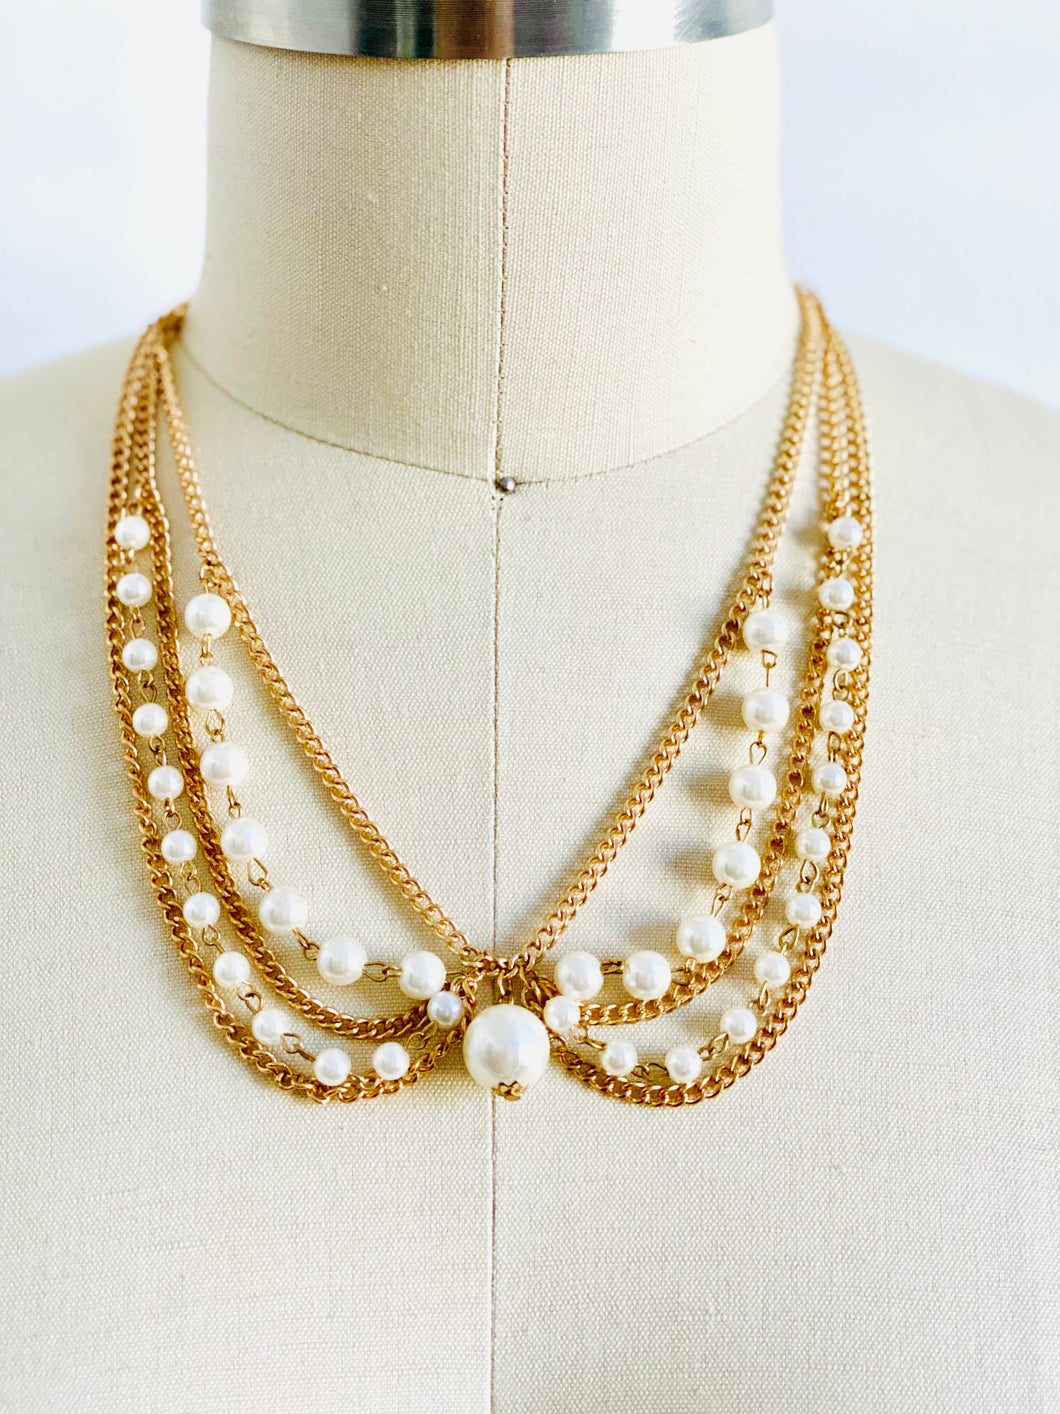 Vintage gold tone pearl necklace collar style choker